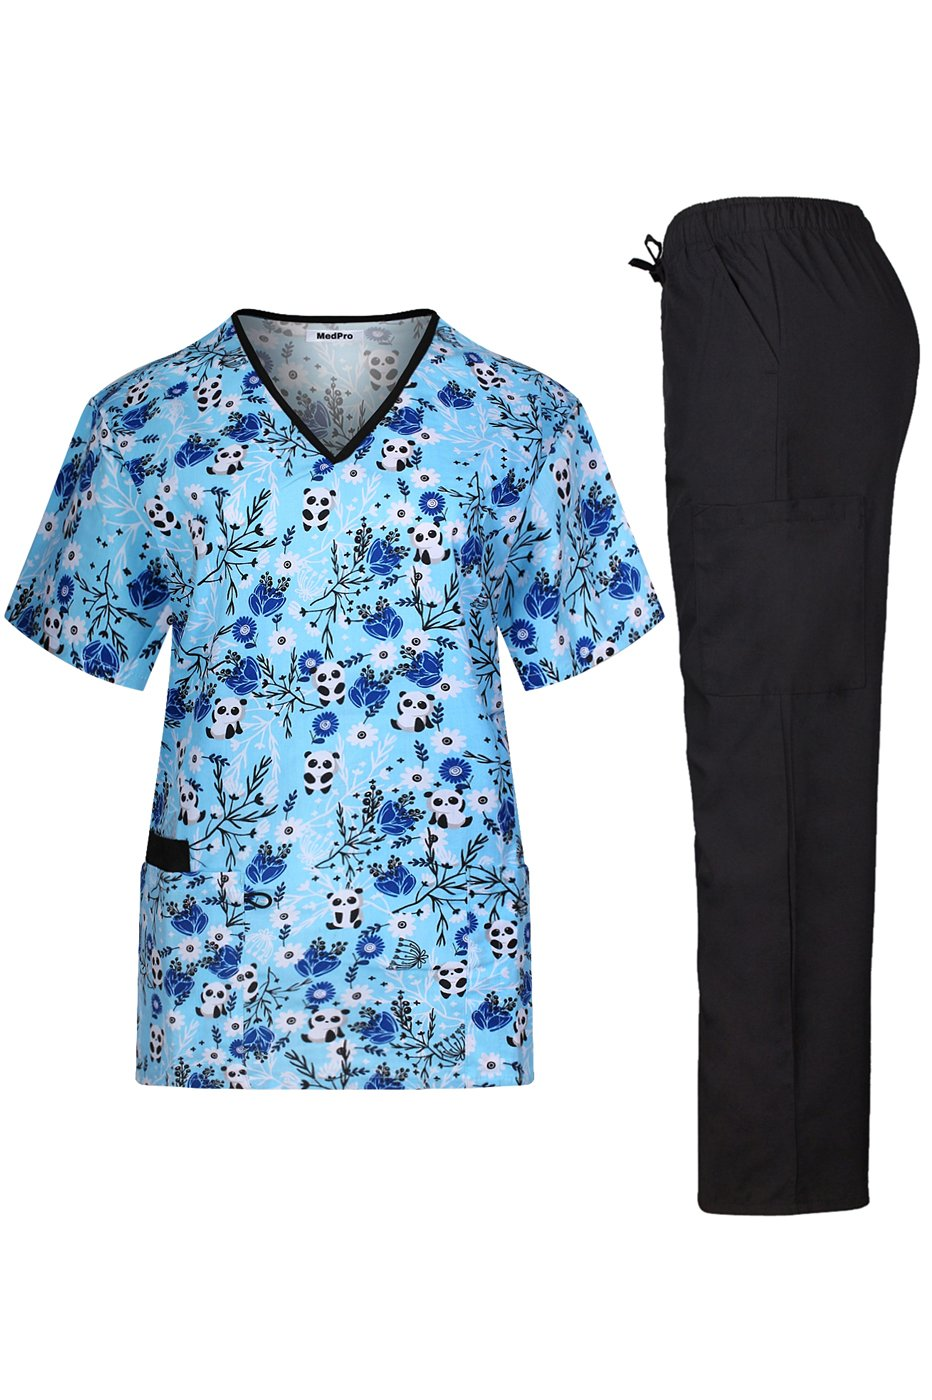 MedPro Women's Medical Scrub Set with Printed V Neck Top and Cargo Pants Blue Black S